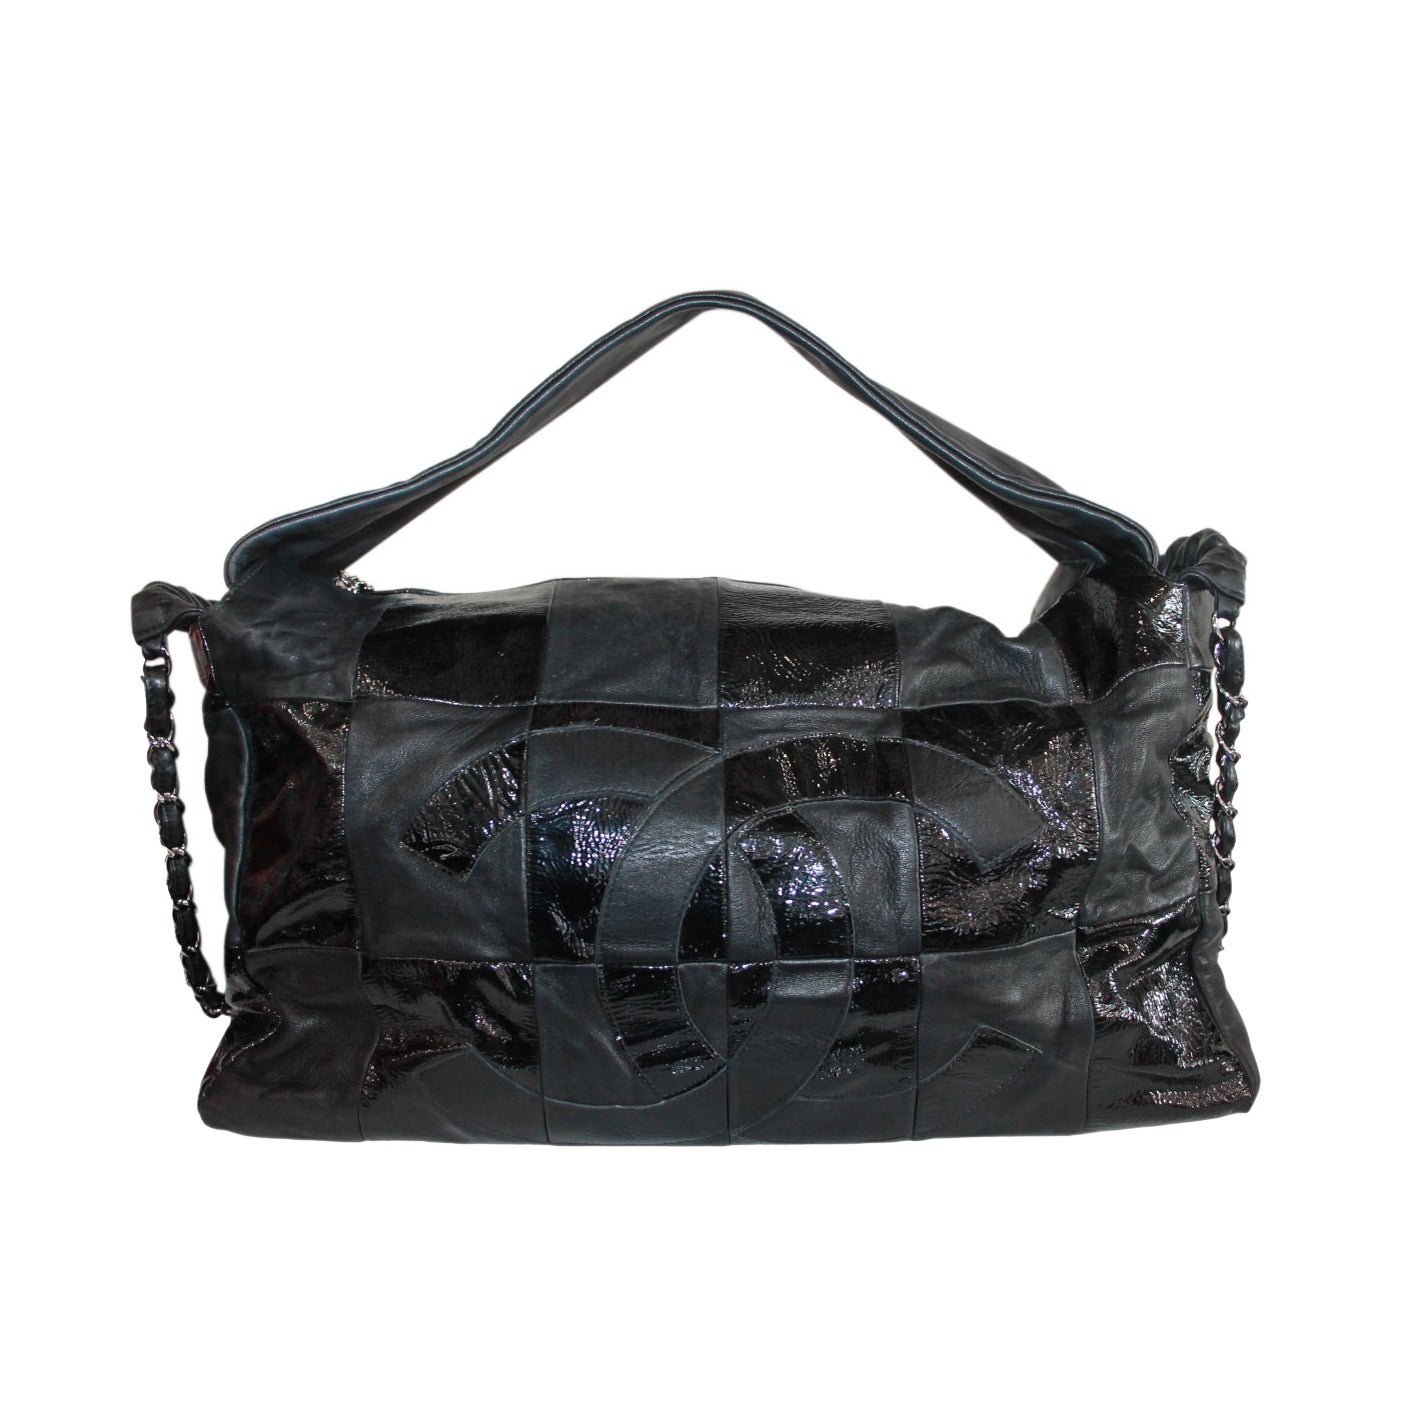 83c3aeac7 Chanel Black Lambskin Quilted Shiny Leather No. 11 Hobo Bag with SHW Chain  For Sale at 1stdibs